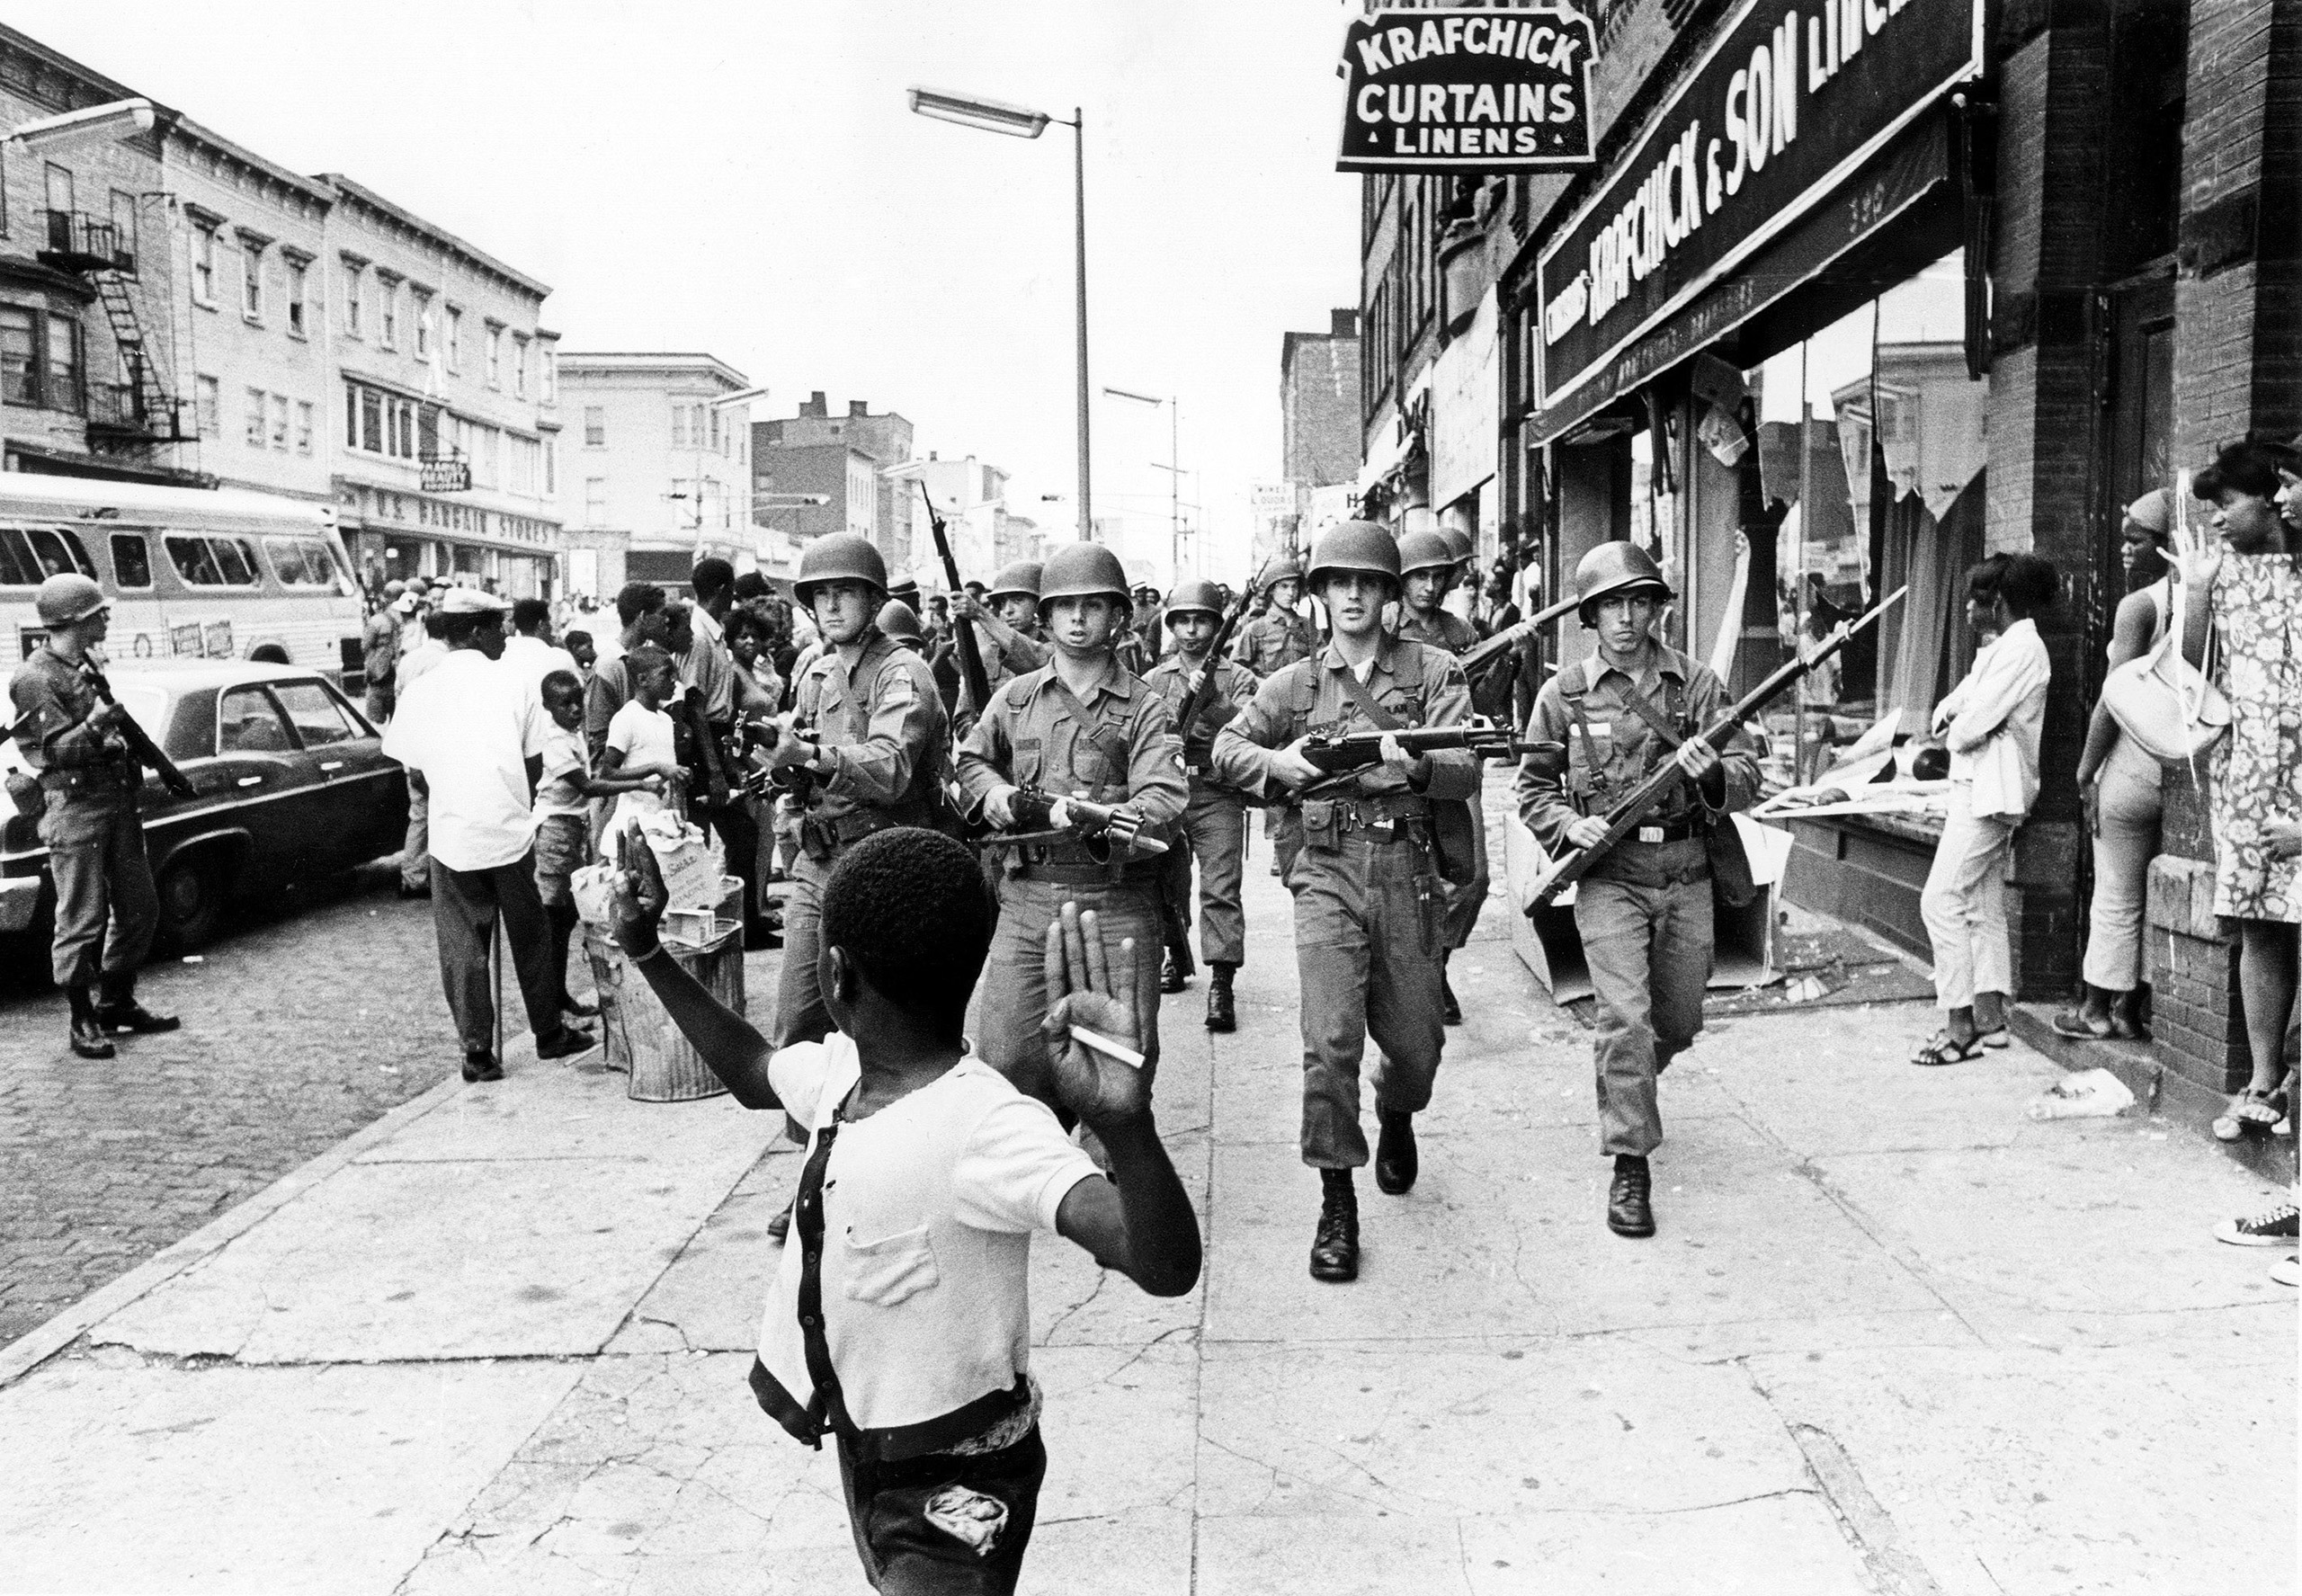 Members of the National Guard on Springfield Avenue in Newark, N.J.  clearing the street on July 14, 1967, after rioting took place.  Their rifles had unsheathed bayonets fixed to the barrels.